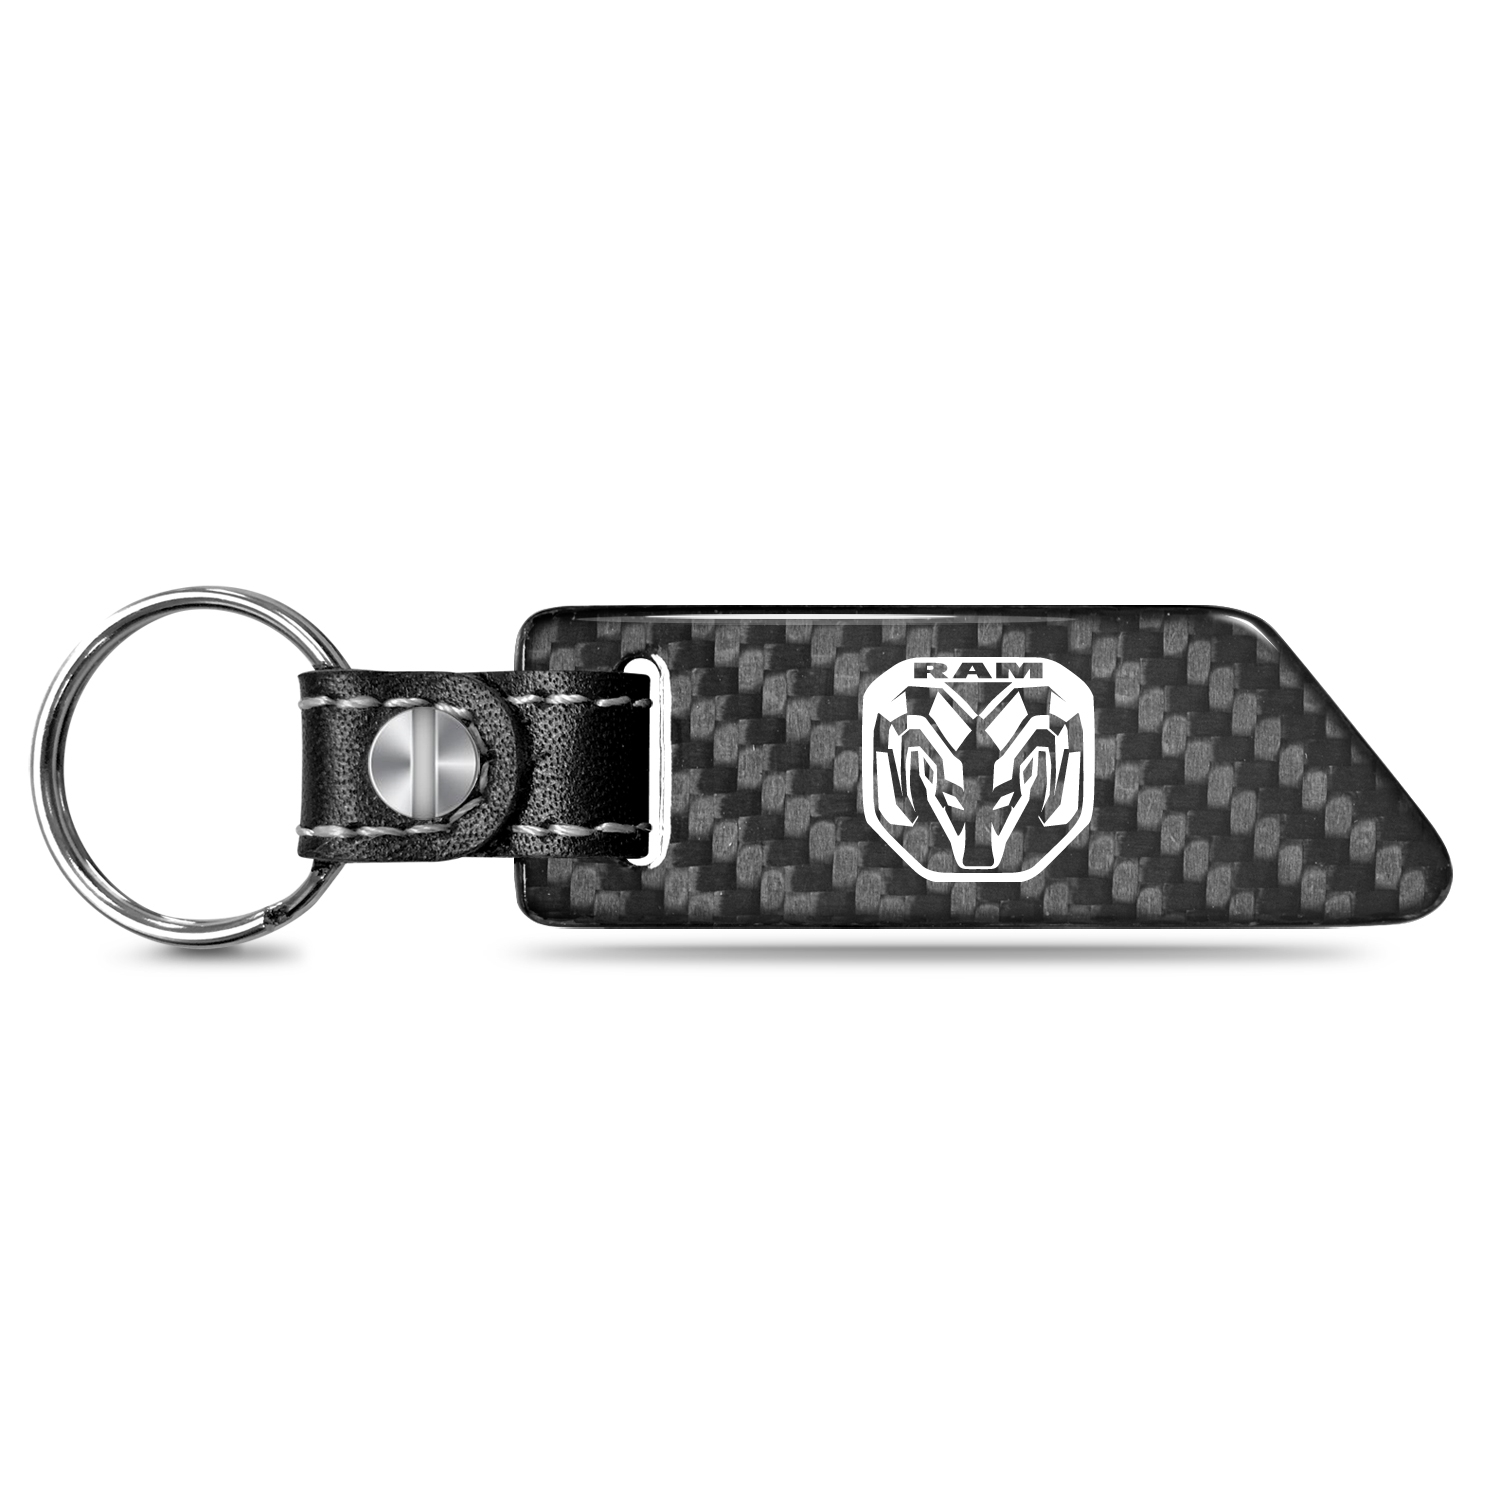 RAM 2019 Real Carbon Fiber Blade Style with Black Leather Strap Key Chain